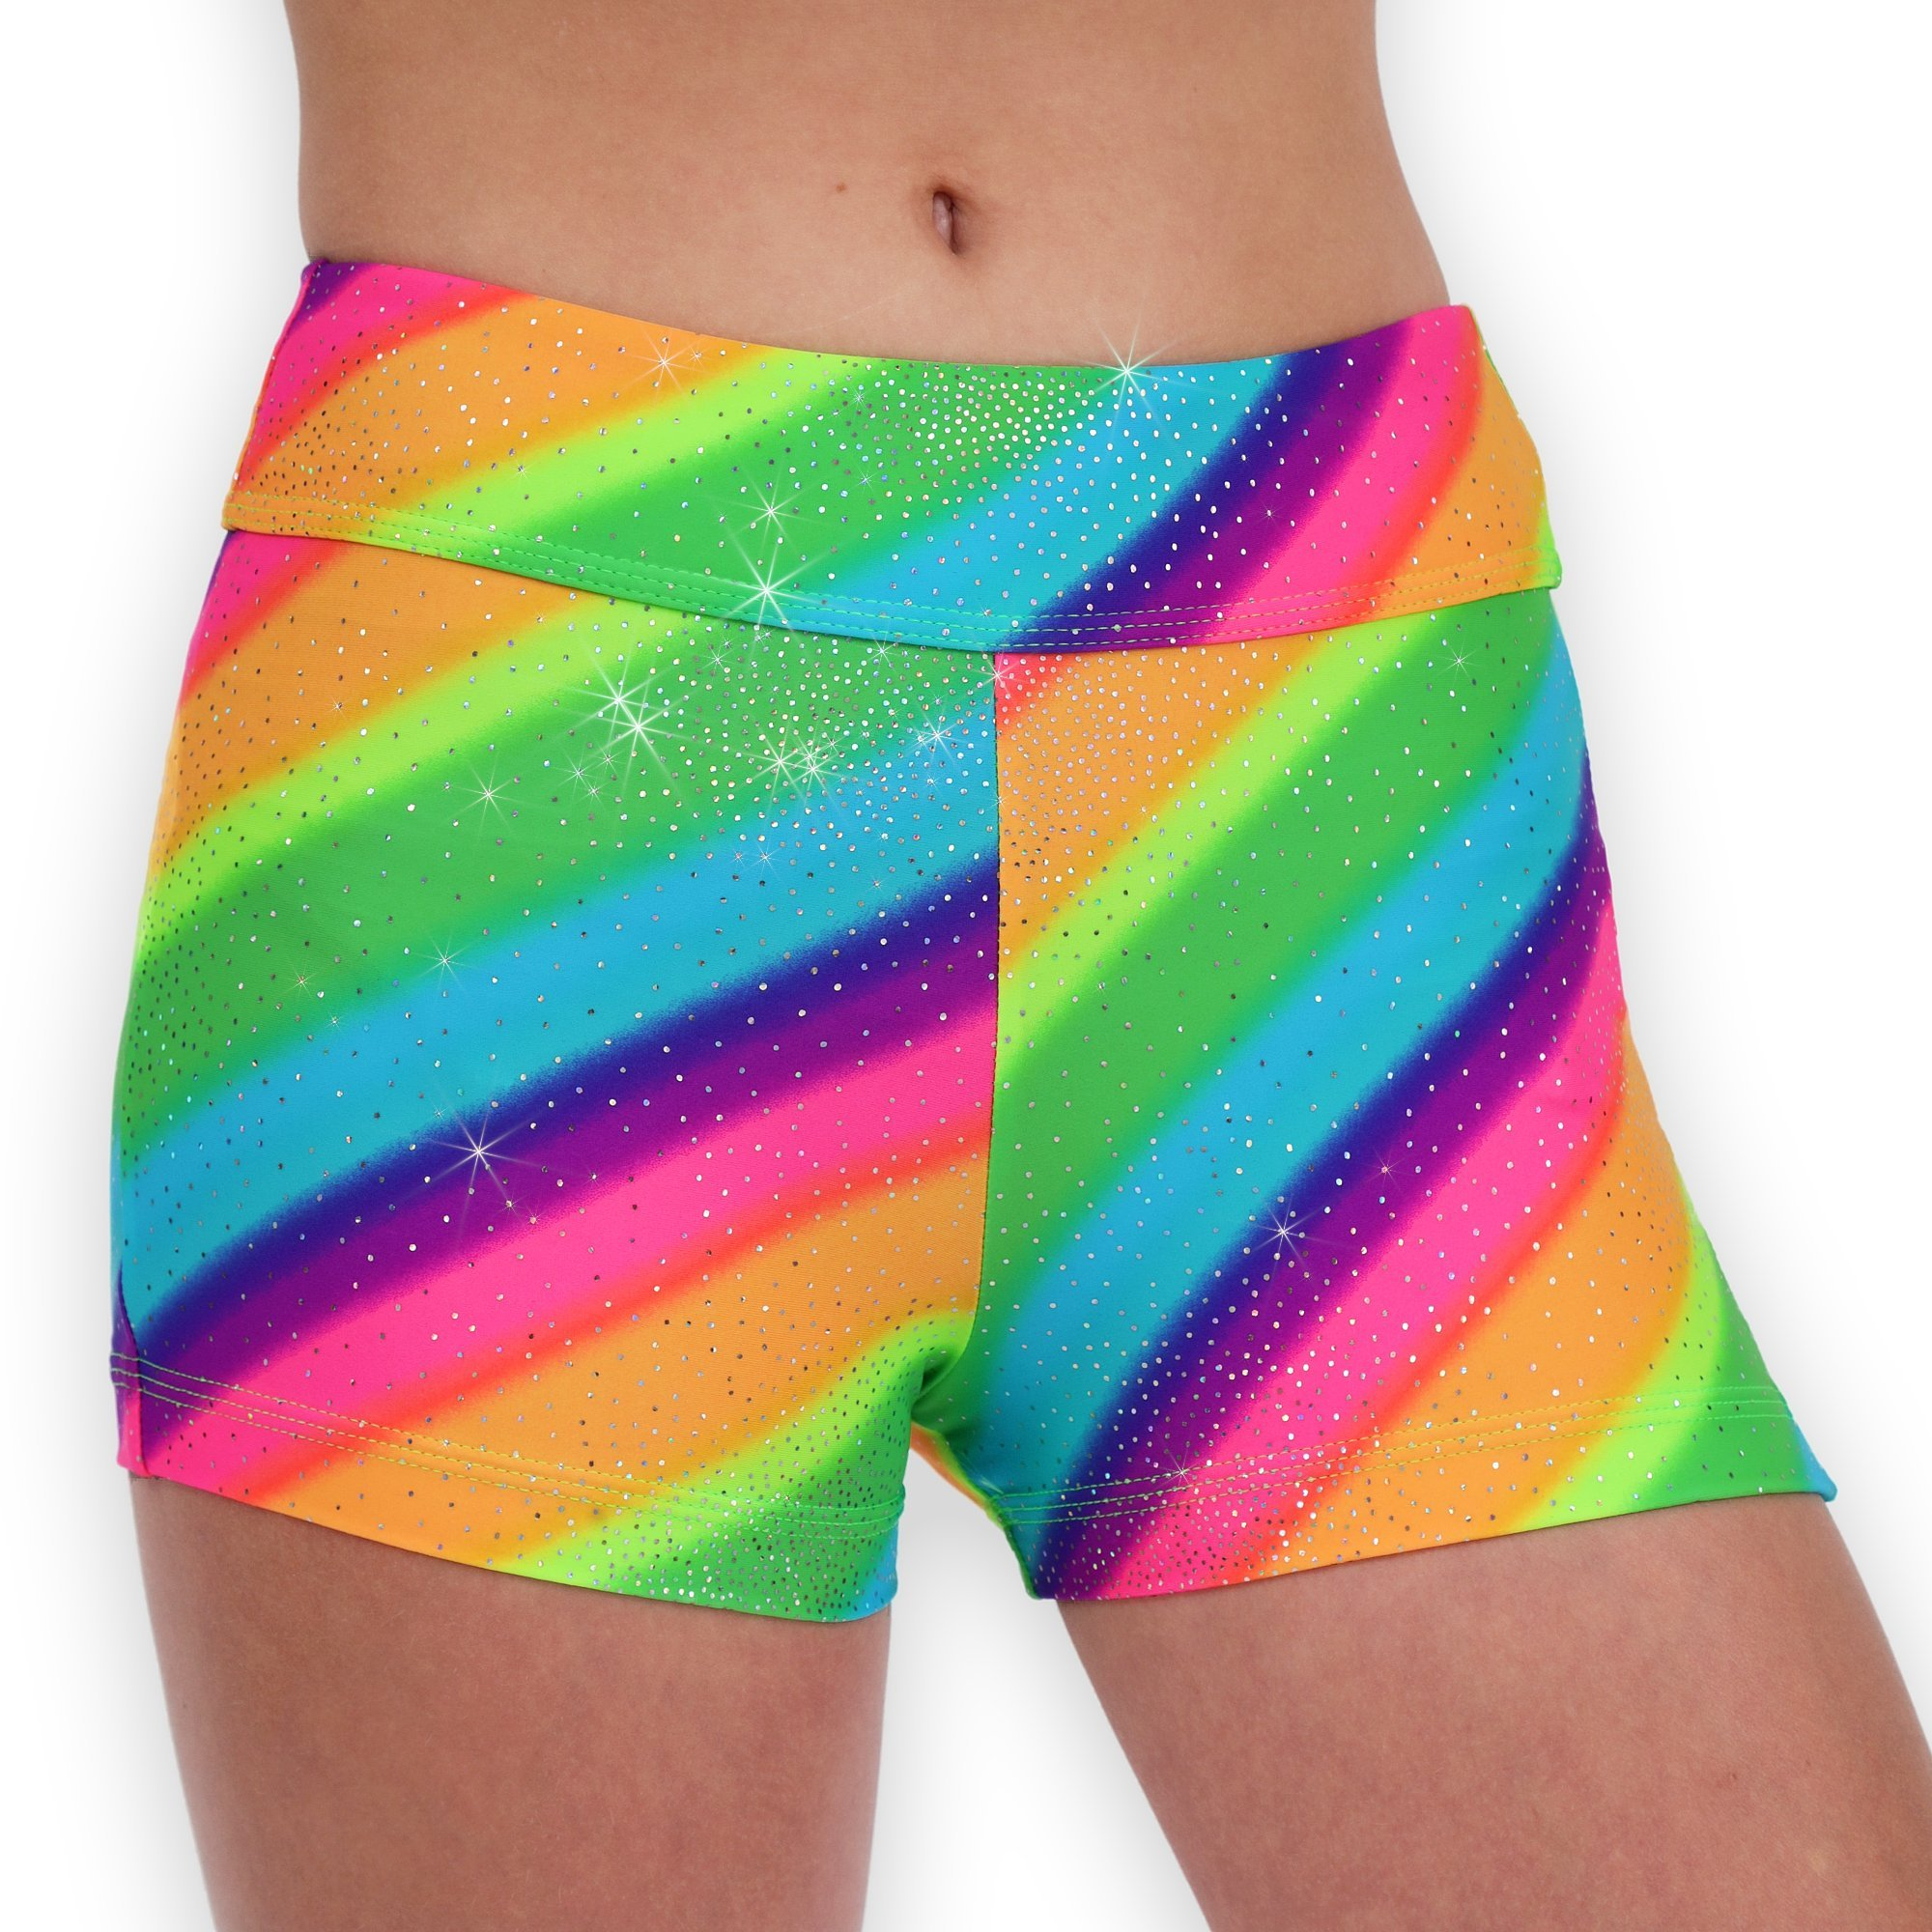 Leap Gear Gymnastics and Dance Shorts - Rainbow Sparkle - A Large by Leap Gear